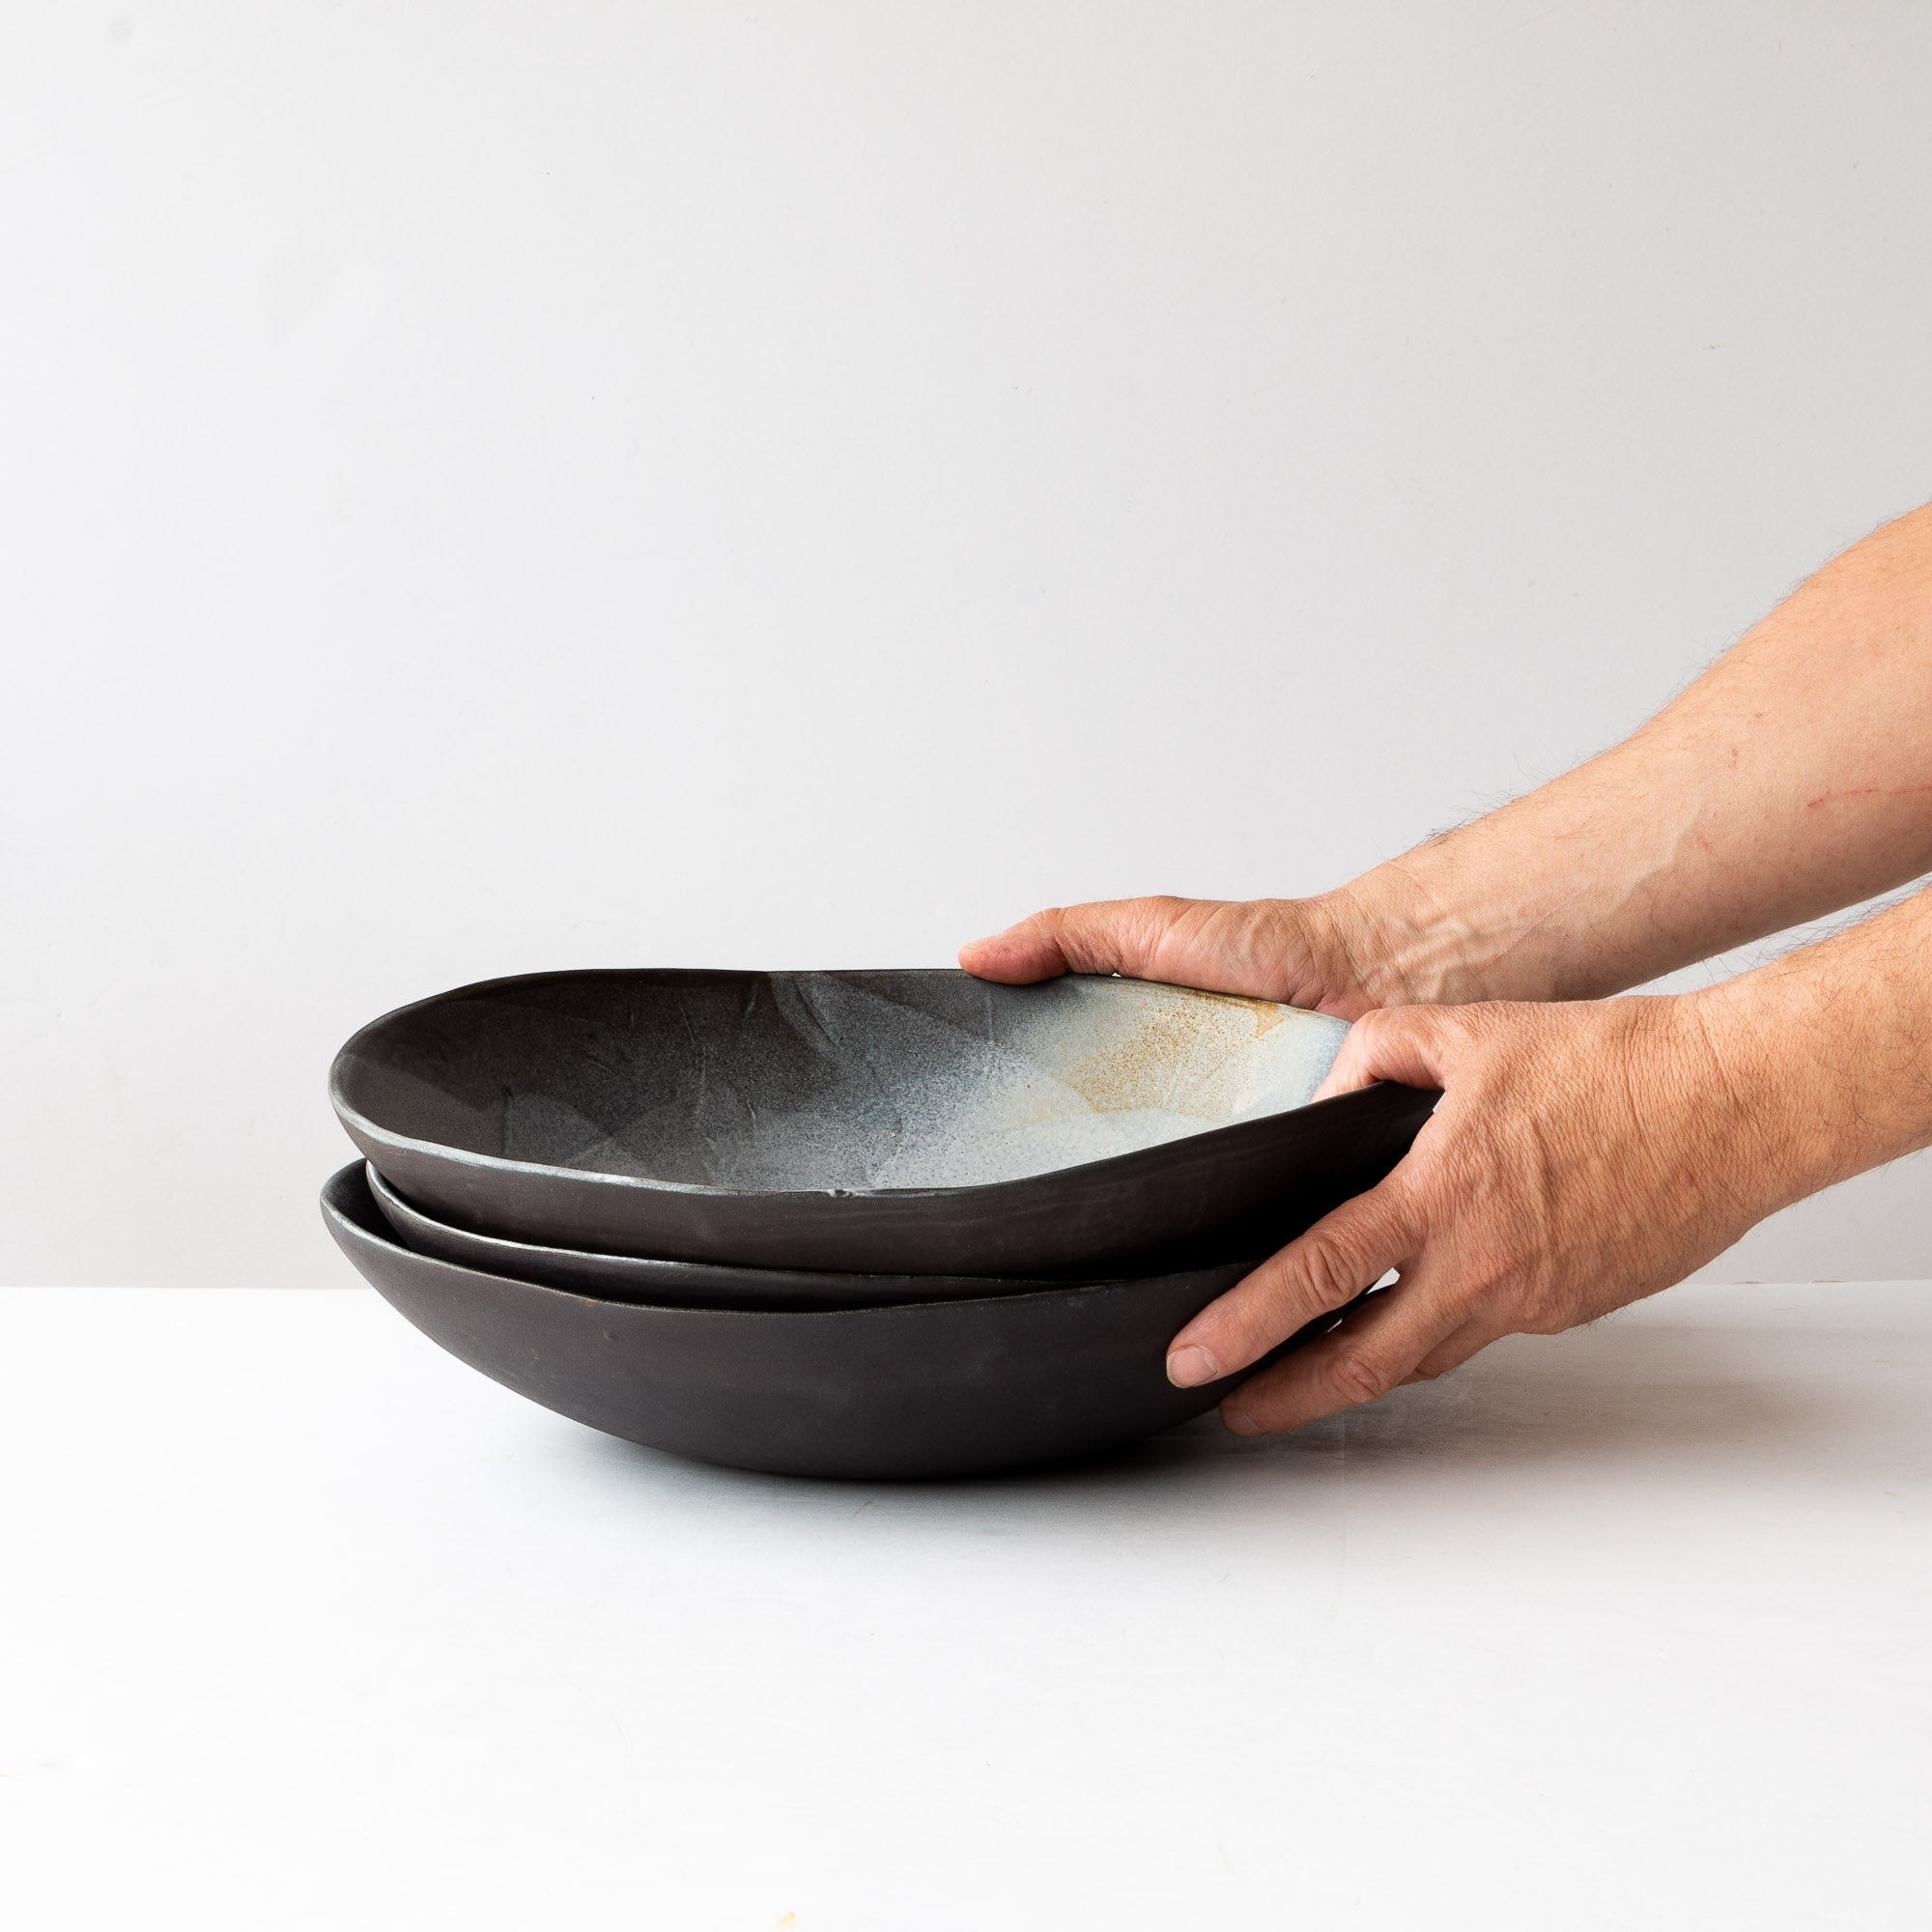 Three Handmade Black Stoneware Saladiers / Salad Bowls - Sold by Chic & Basta